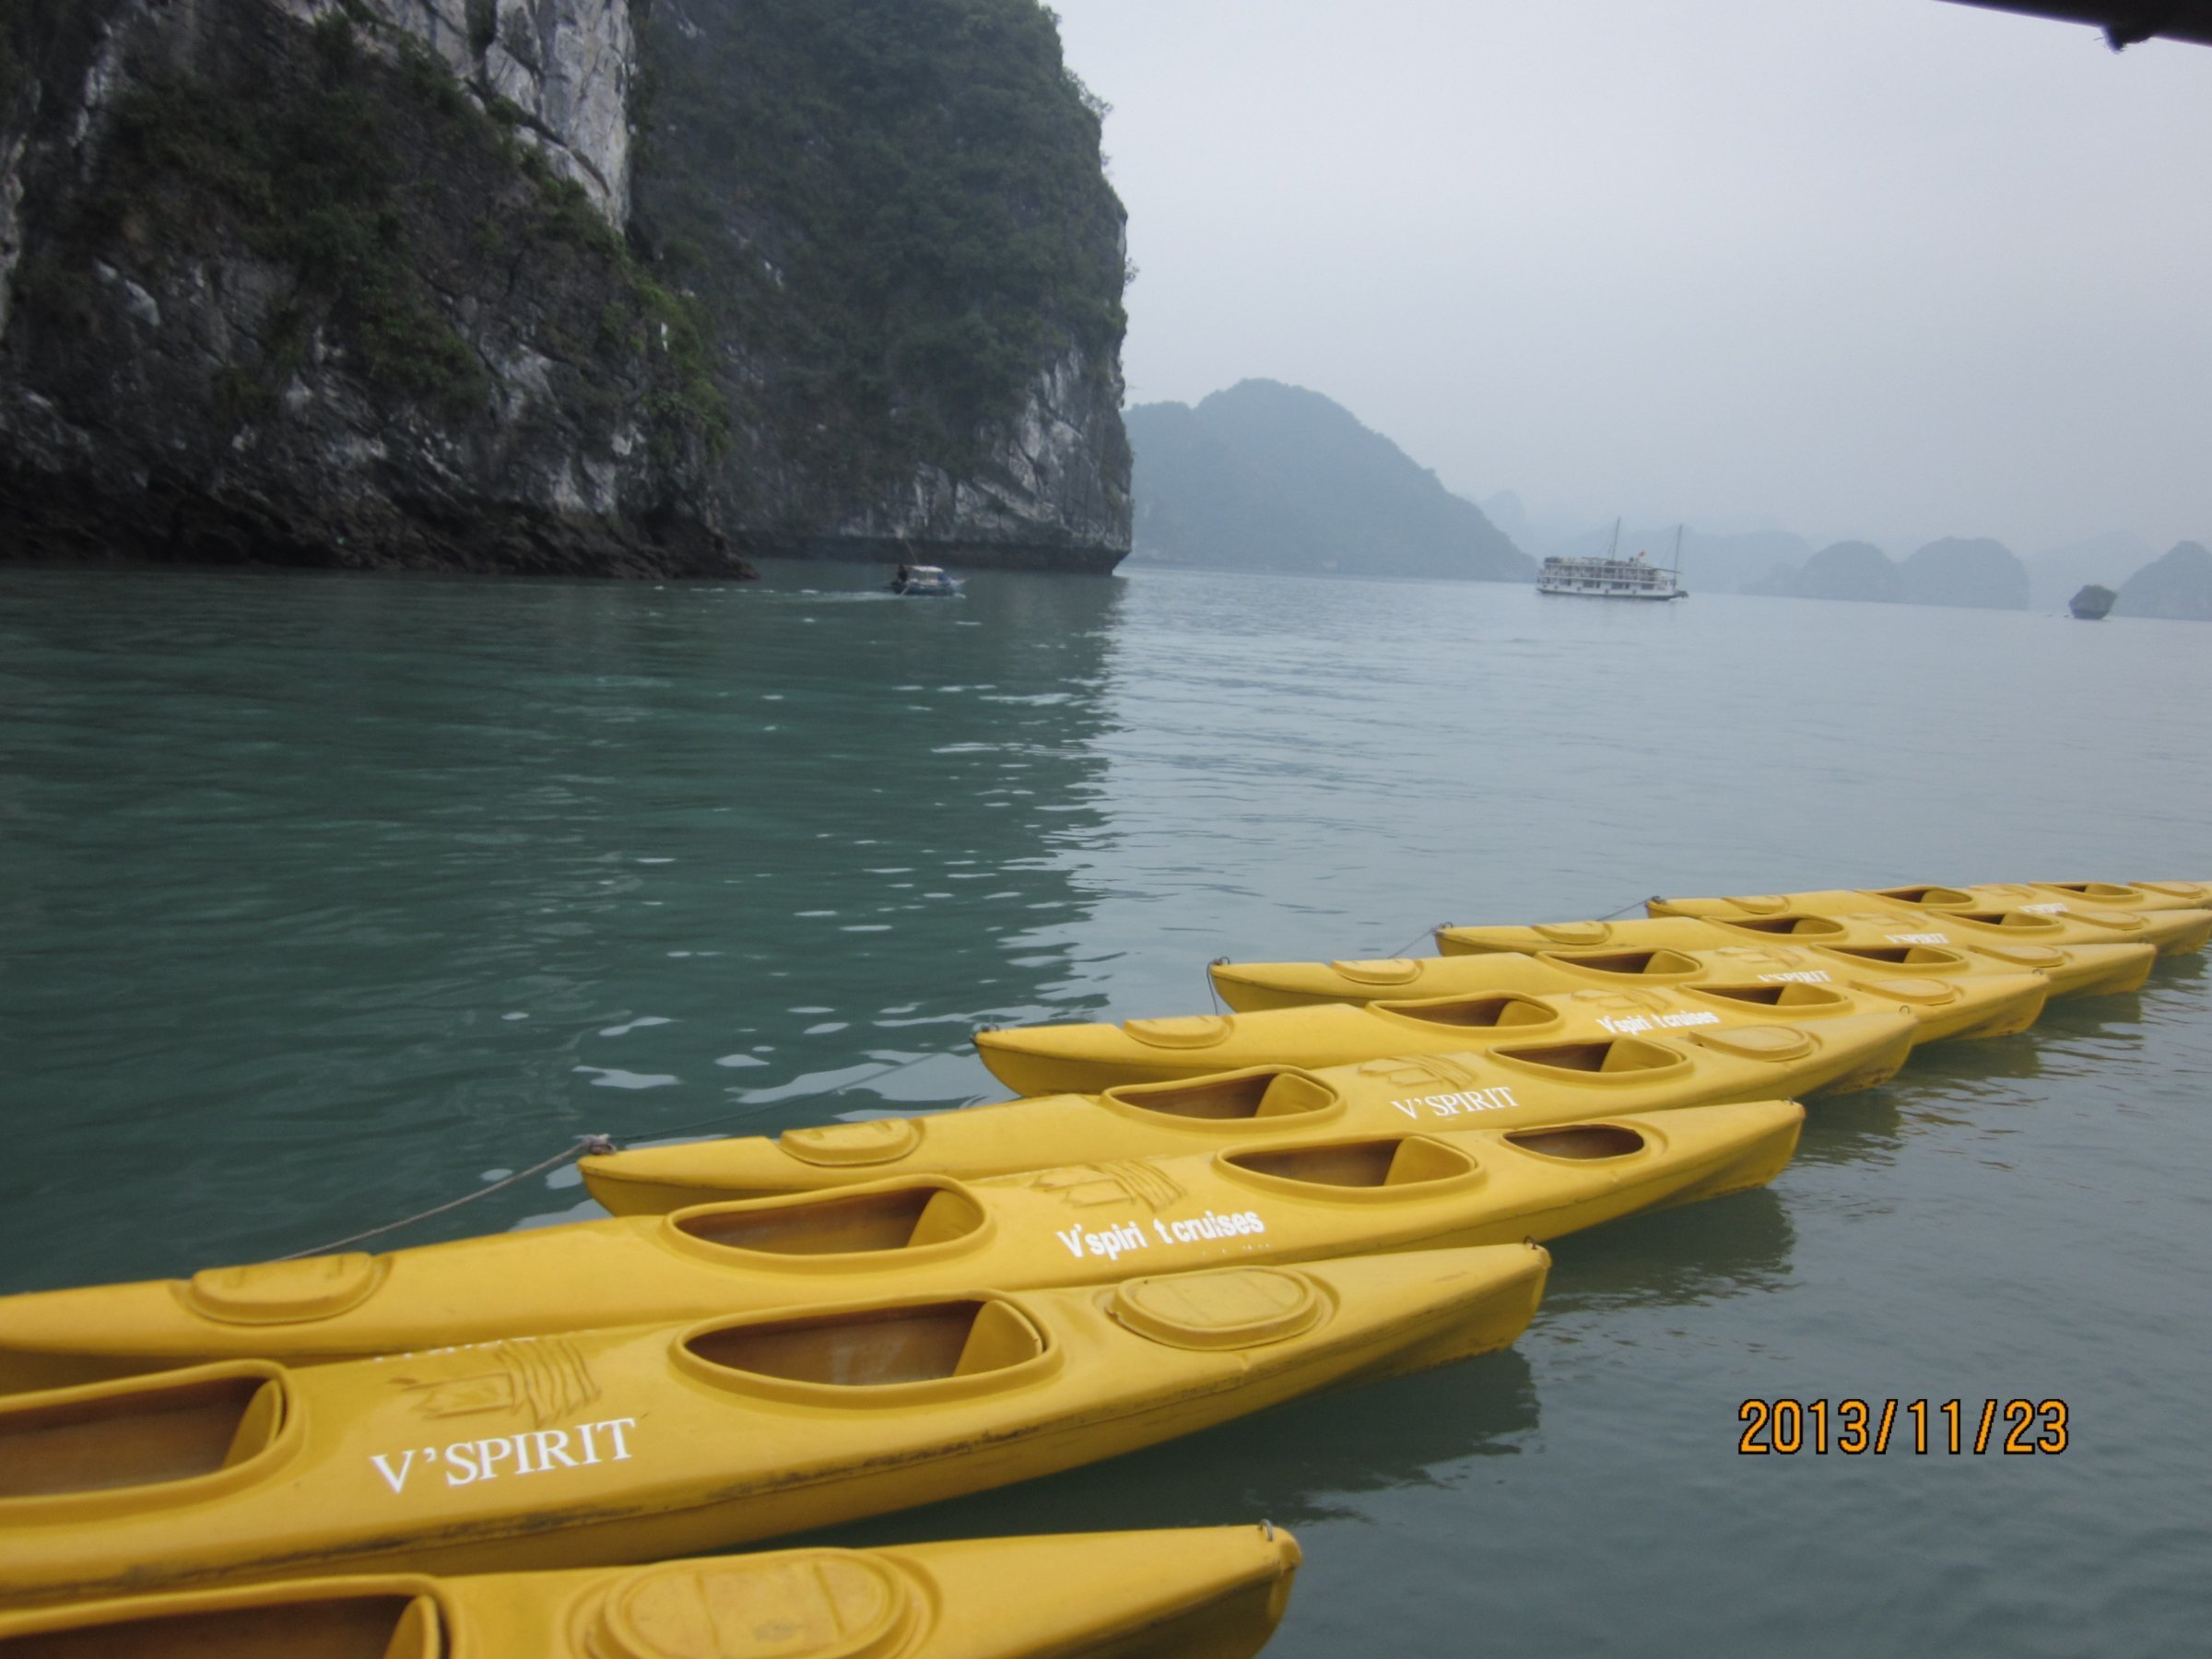 5-Day Northern Vietnamese Landscape - Vietnam and United States Itinerary